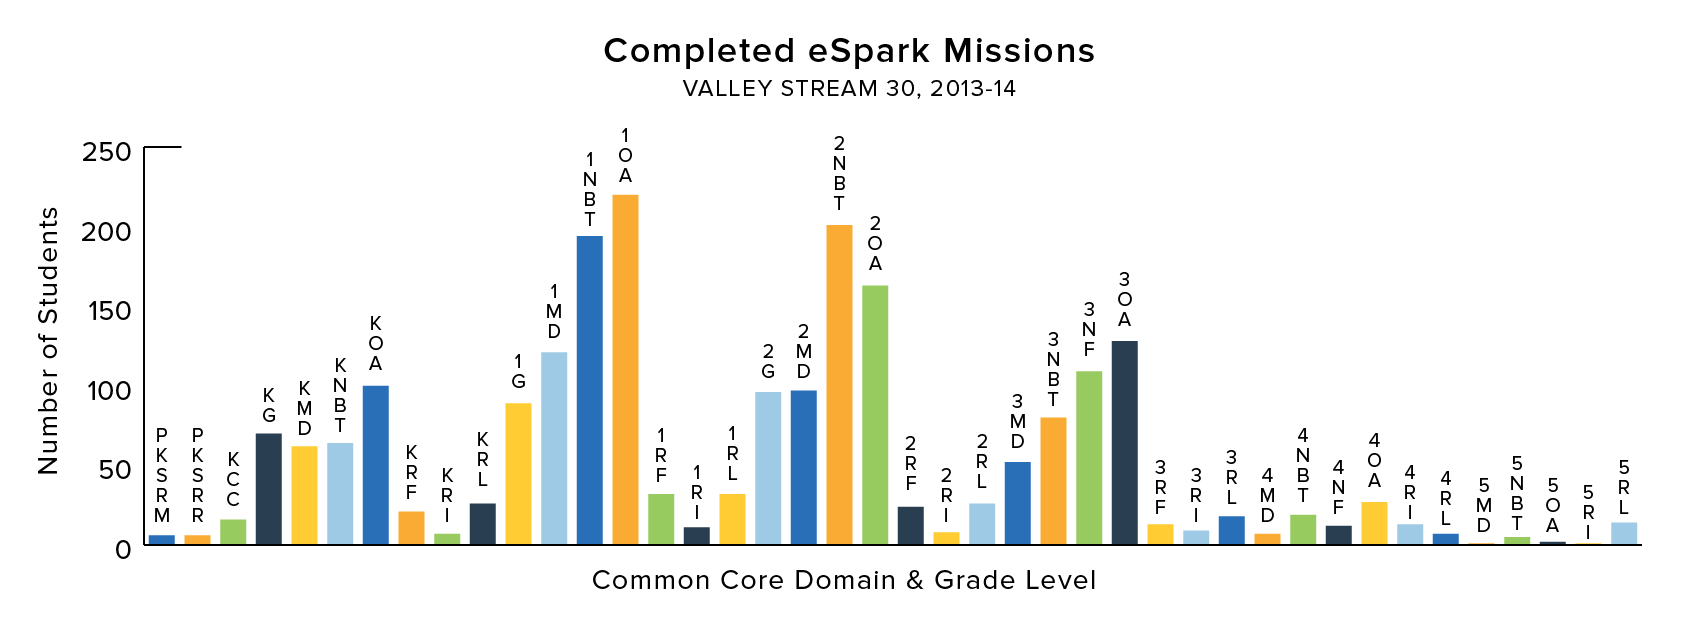 Academic Achievement by Completed eSpark Missions